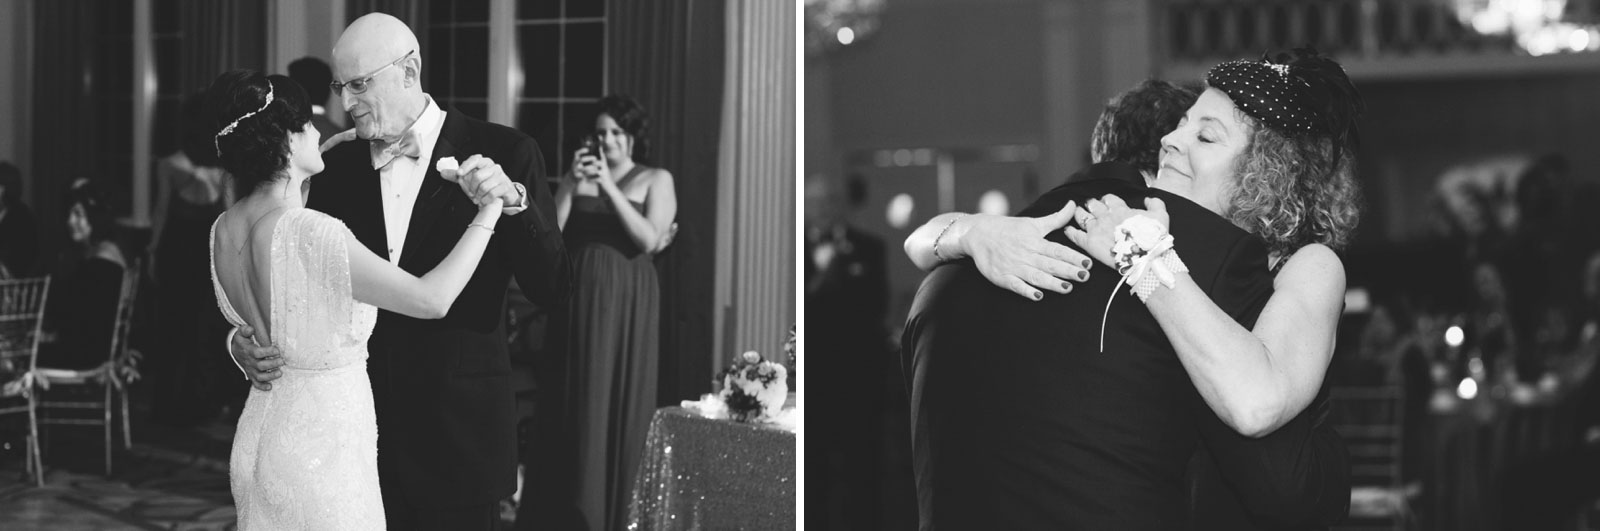 intimate black and white shots of father-daughter dance and mother-son dance during vintage wedding